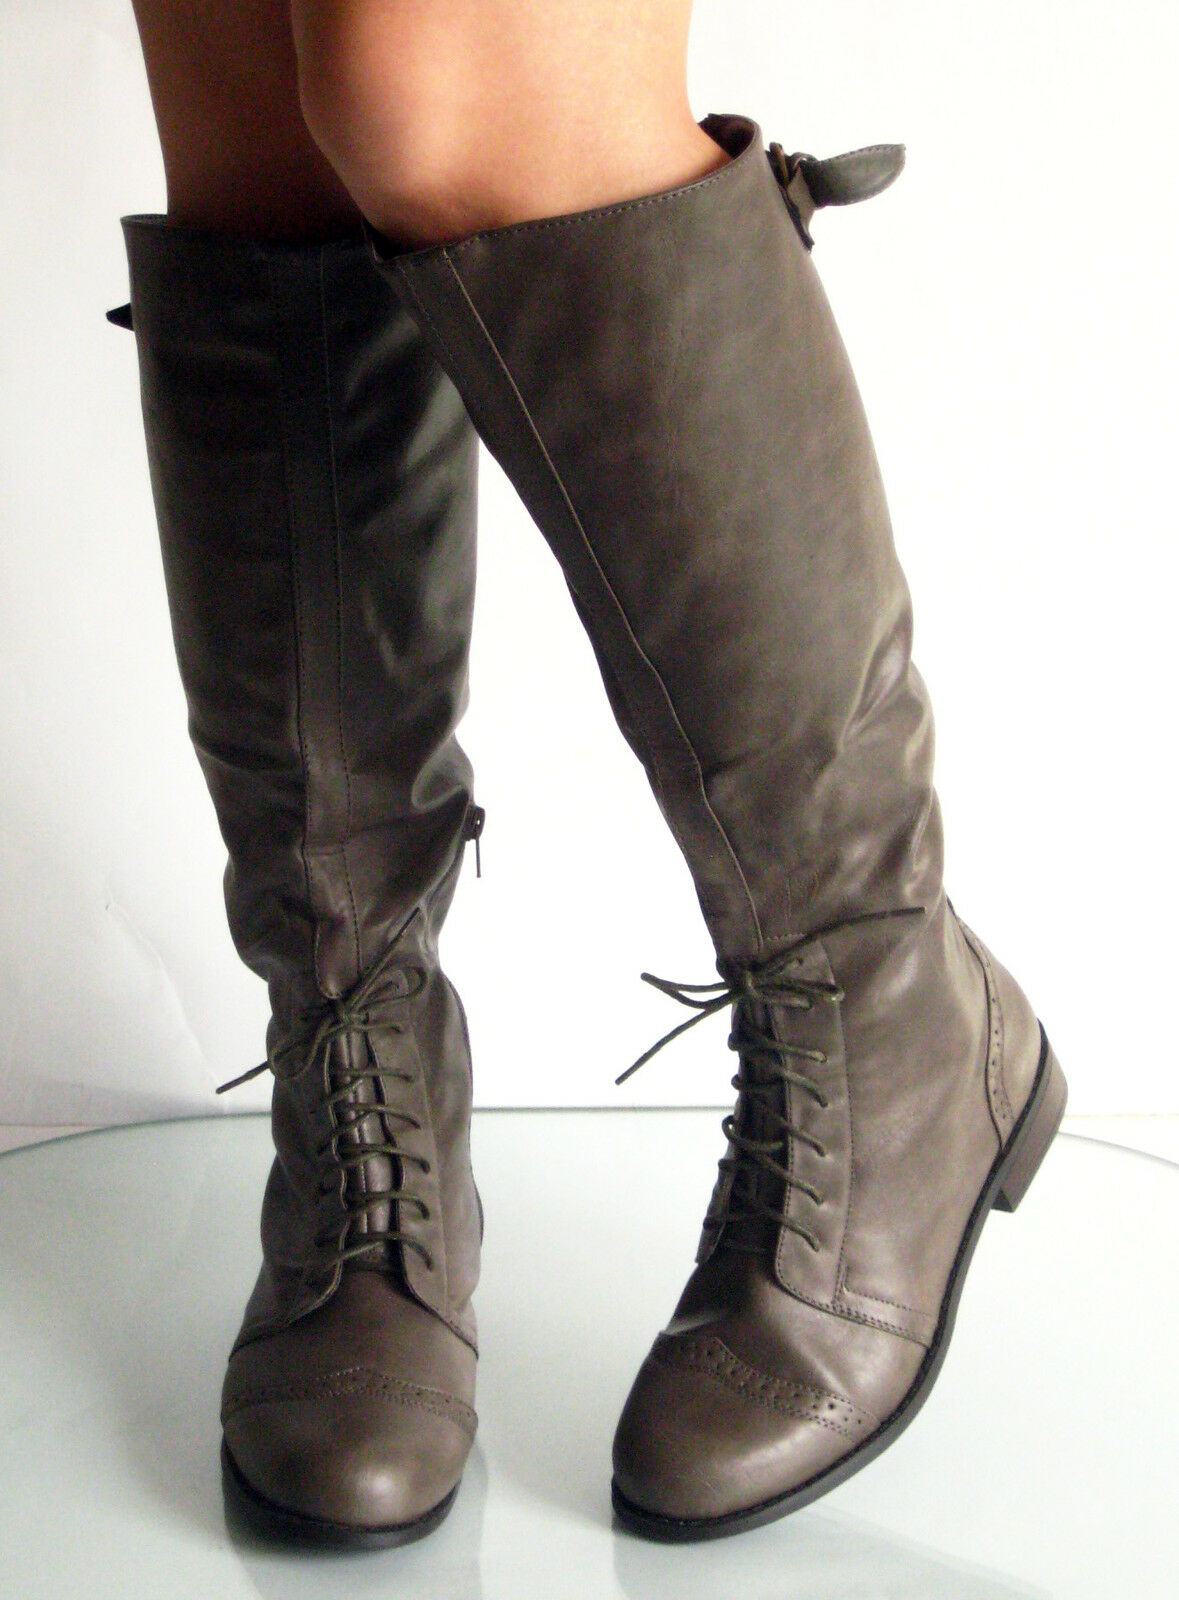 New Classic Round Toe Lace Up Low Flat Heel Knee High Boots Oxford Brogued Taupe